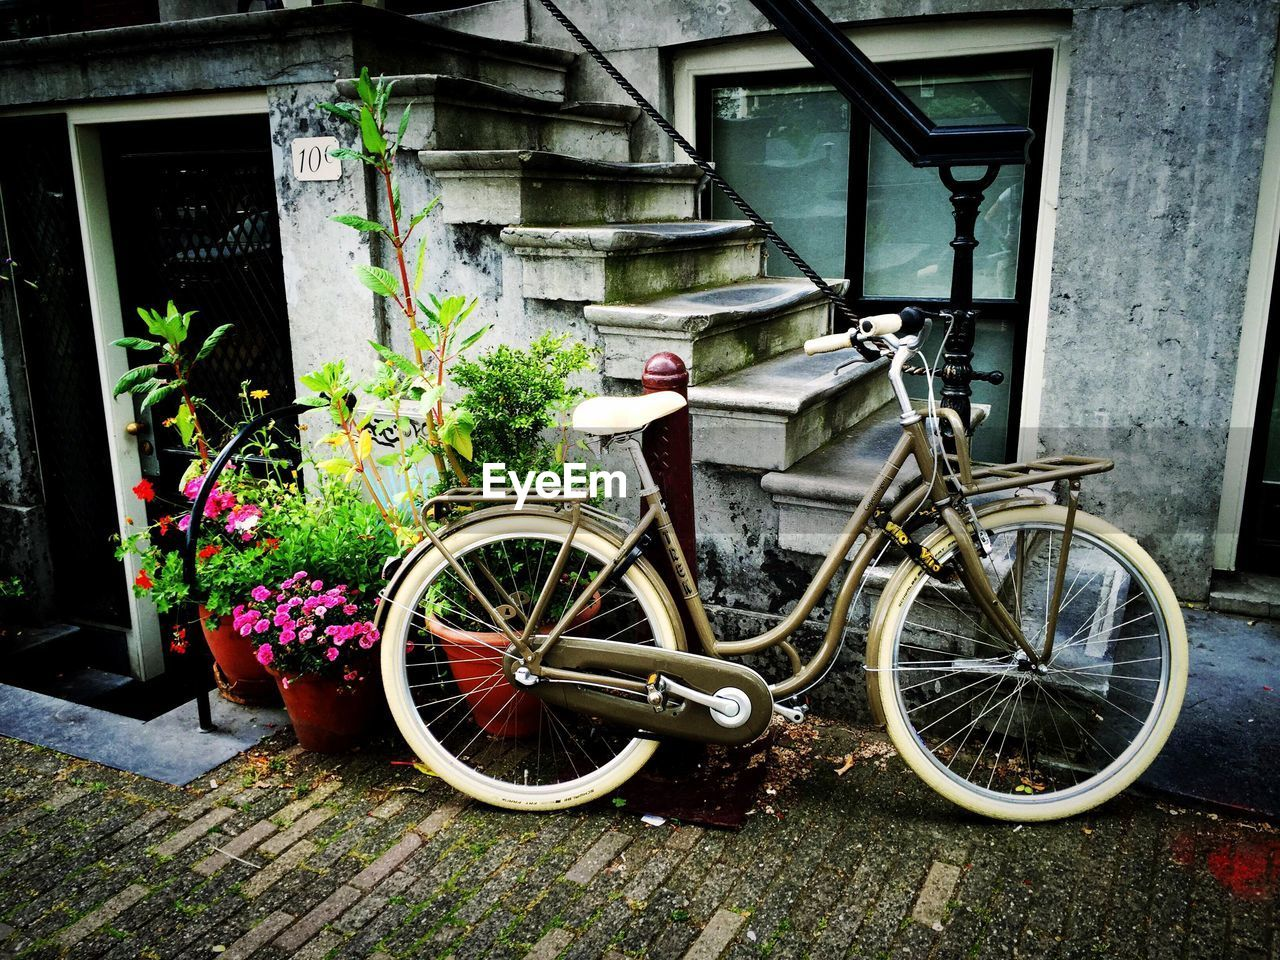 bicycle, day, outdoors, transportation, building exterior, architecture, built structure, no people, mode of transport, land vehicle, stationary, plant, growth, flower, nature